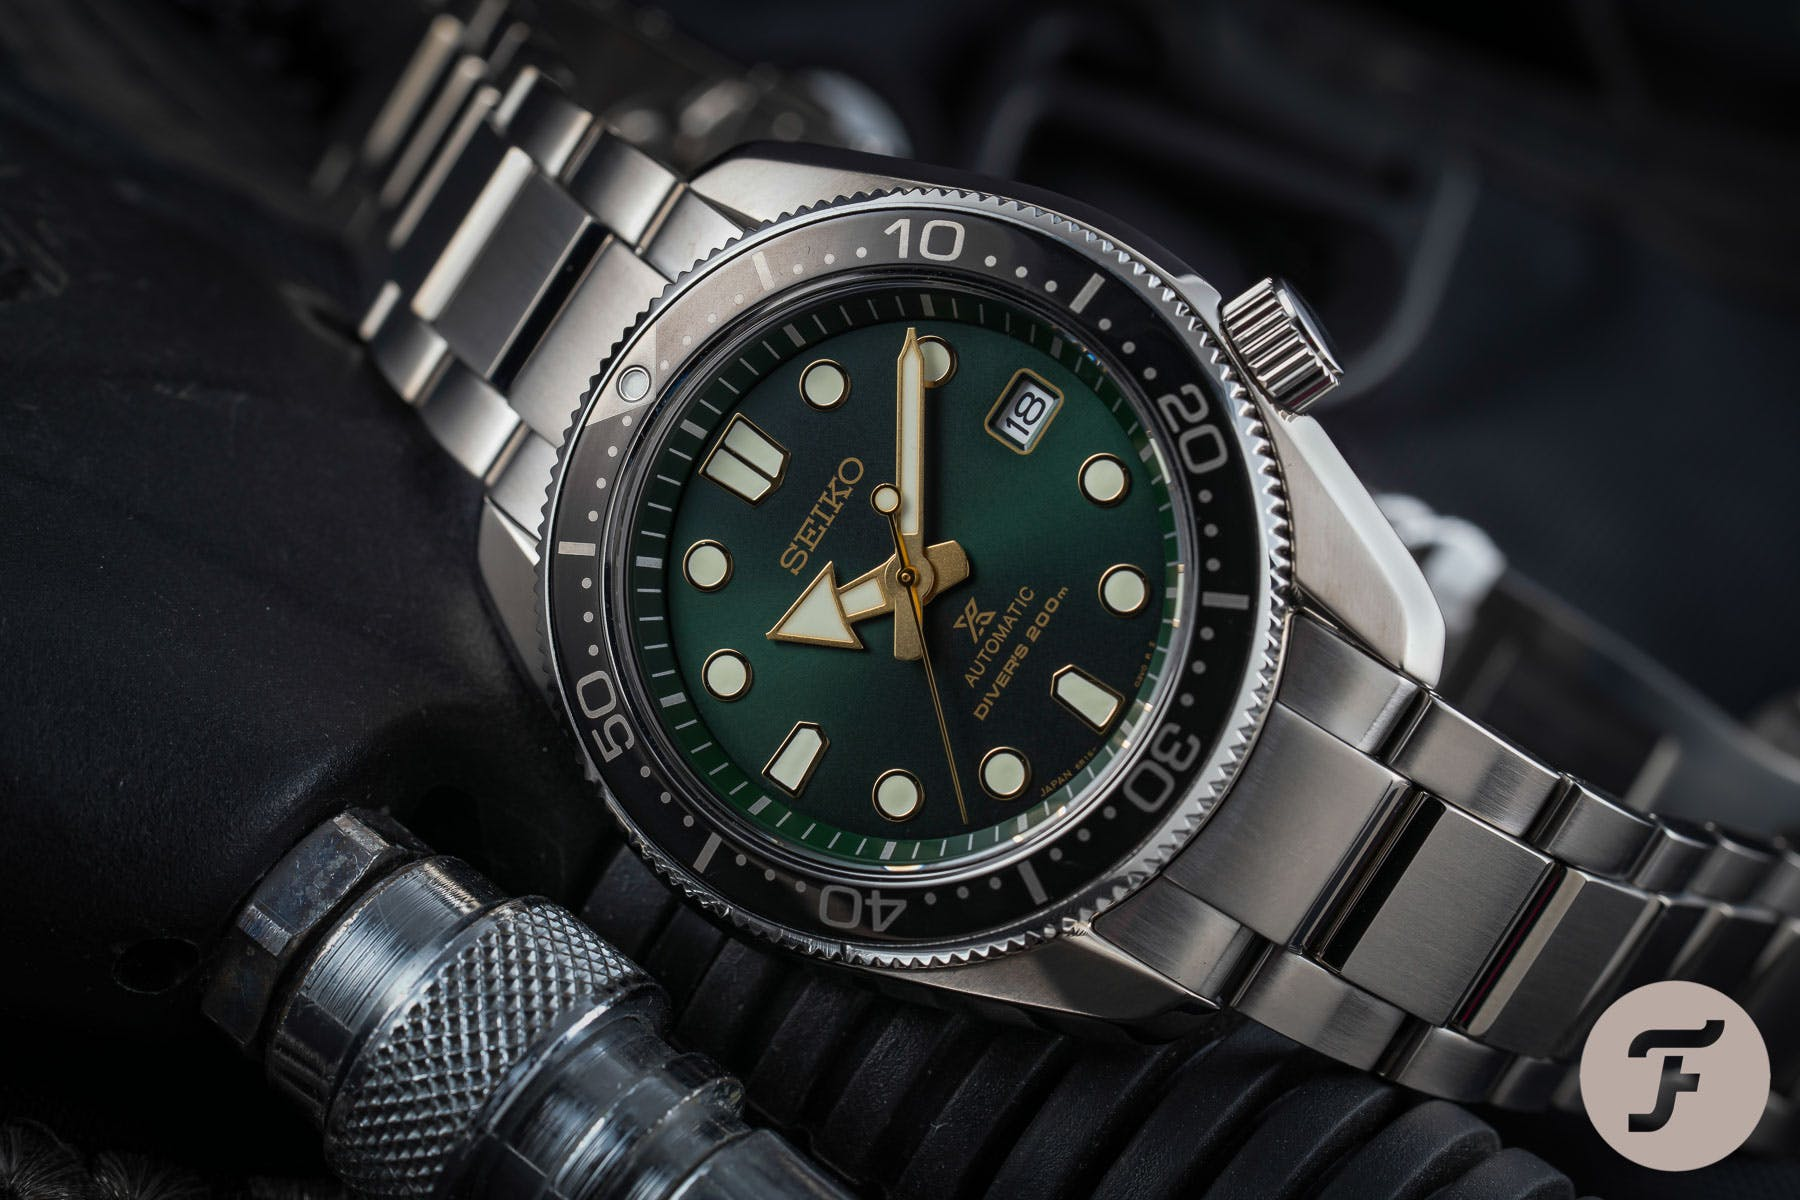 Seiko Stainless Steel Prospex Diver's 200M Automatic Watch (SBP105)